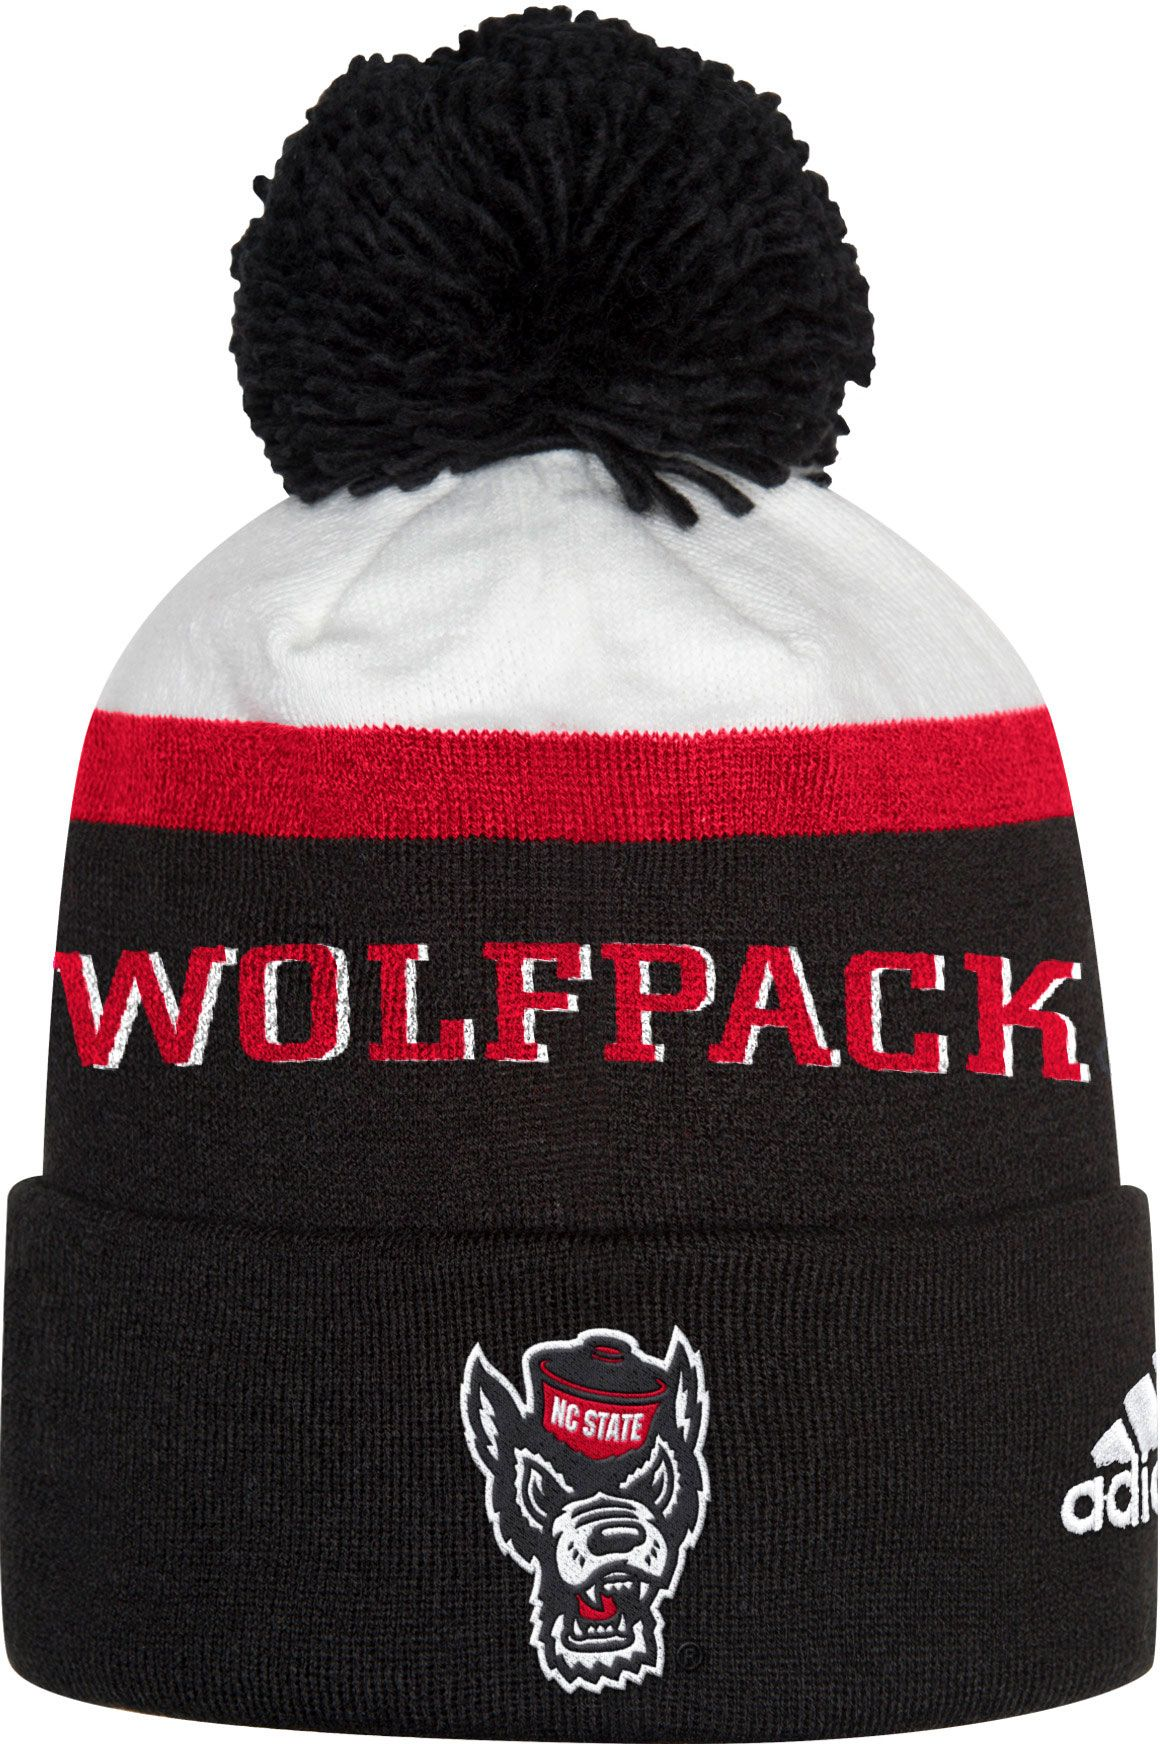 e910ffd4e86 ... purchase adidas mens nc state wolfpack cuffed pom knit black beanie  55918 c6894